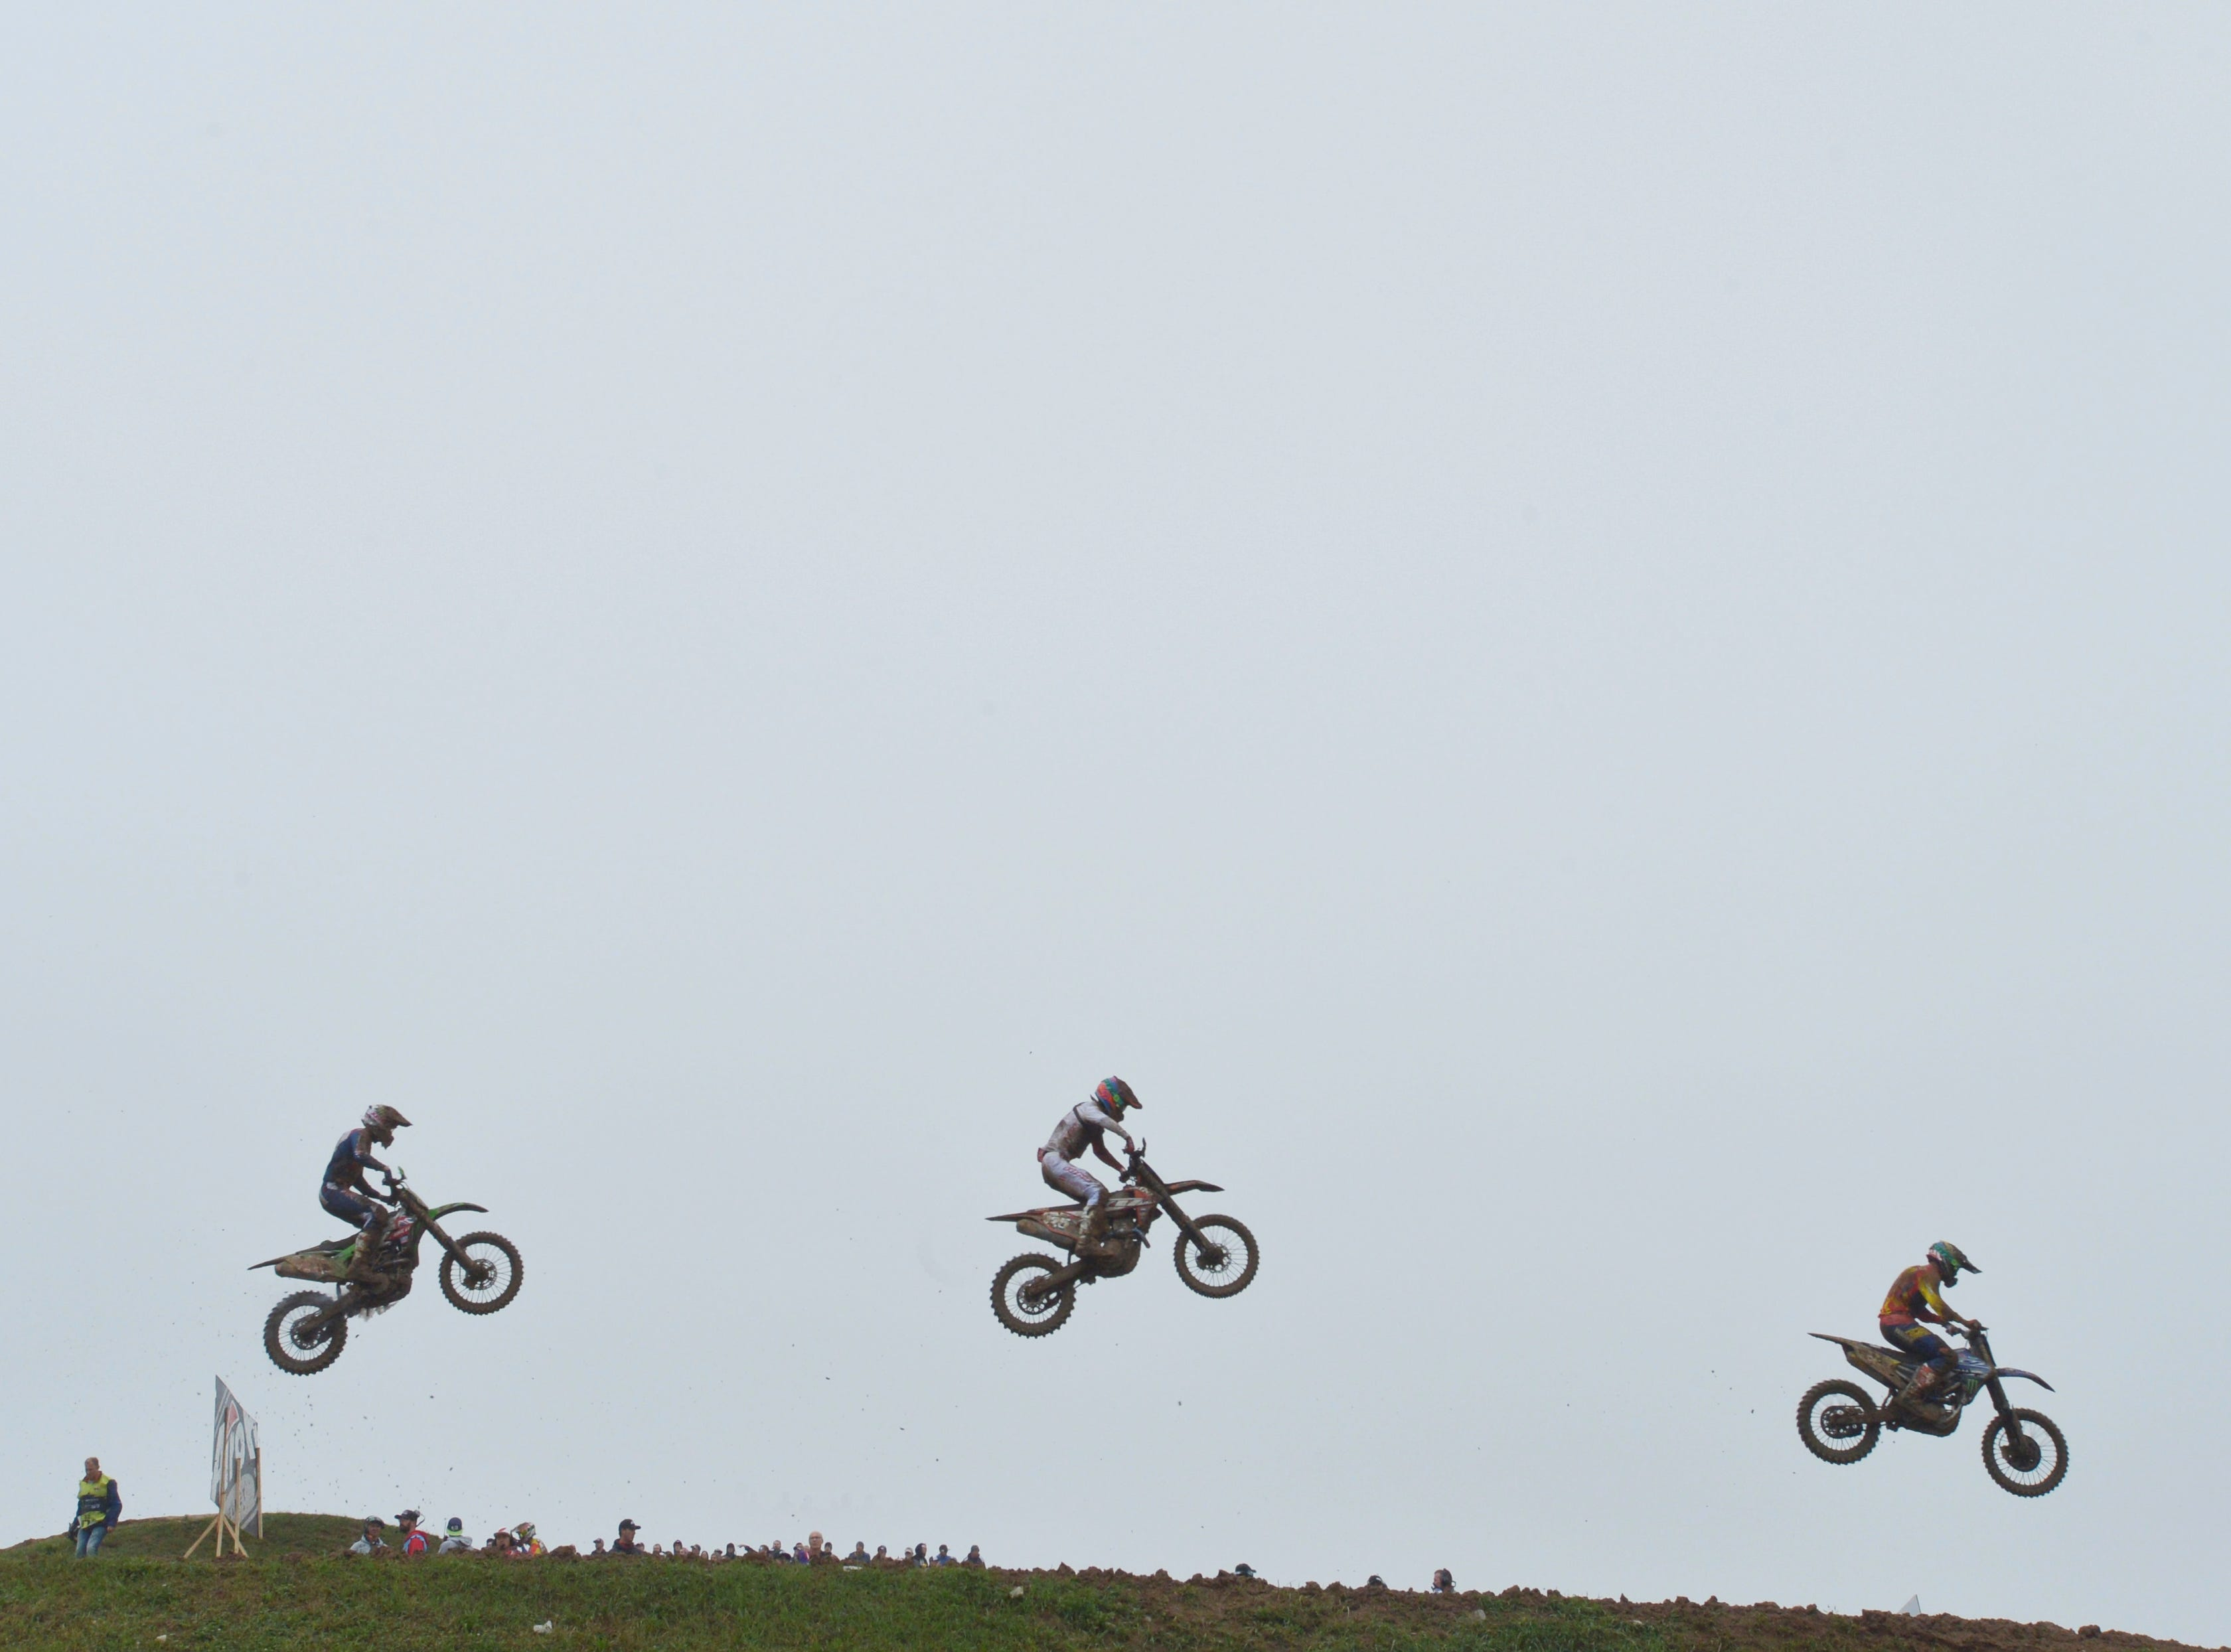 Riders fly over a jump during the first moto Sunday, Oct. 7, 2018, at the Motocross of Nations held at RedBud Mx in Buchanan, Mich.